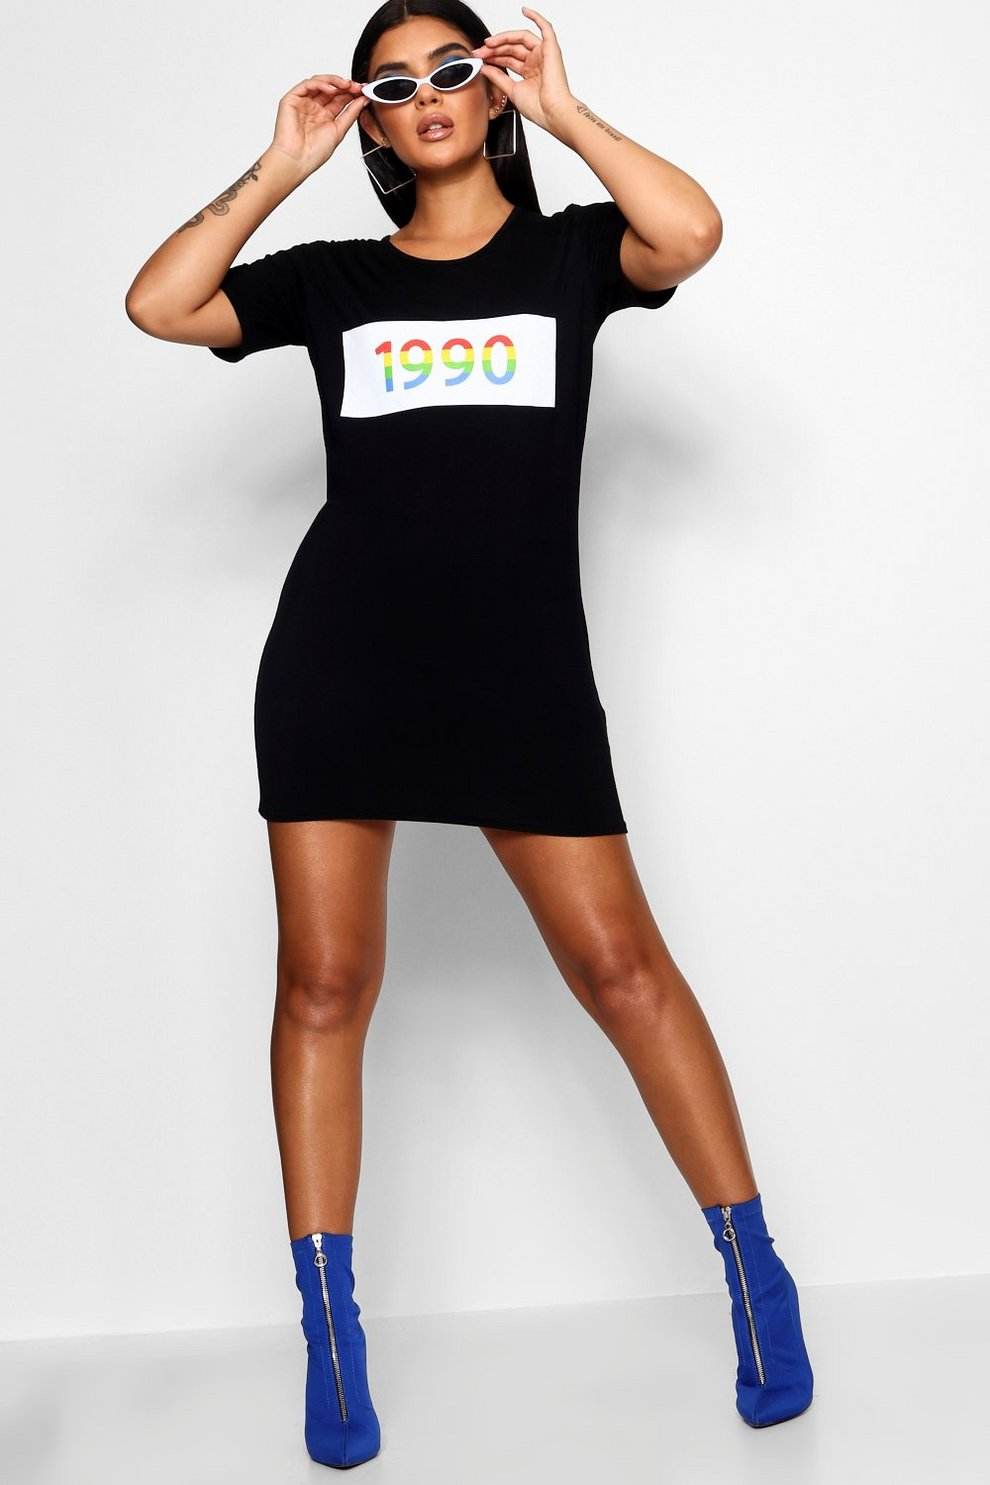 Boohoo 1990 Rainbow Slogan T-Shirt Dress Discount Outlet Free Shipping Countdown Package Sale Great Deals New Arrival Cheap Price Genuine tapm0pJQy